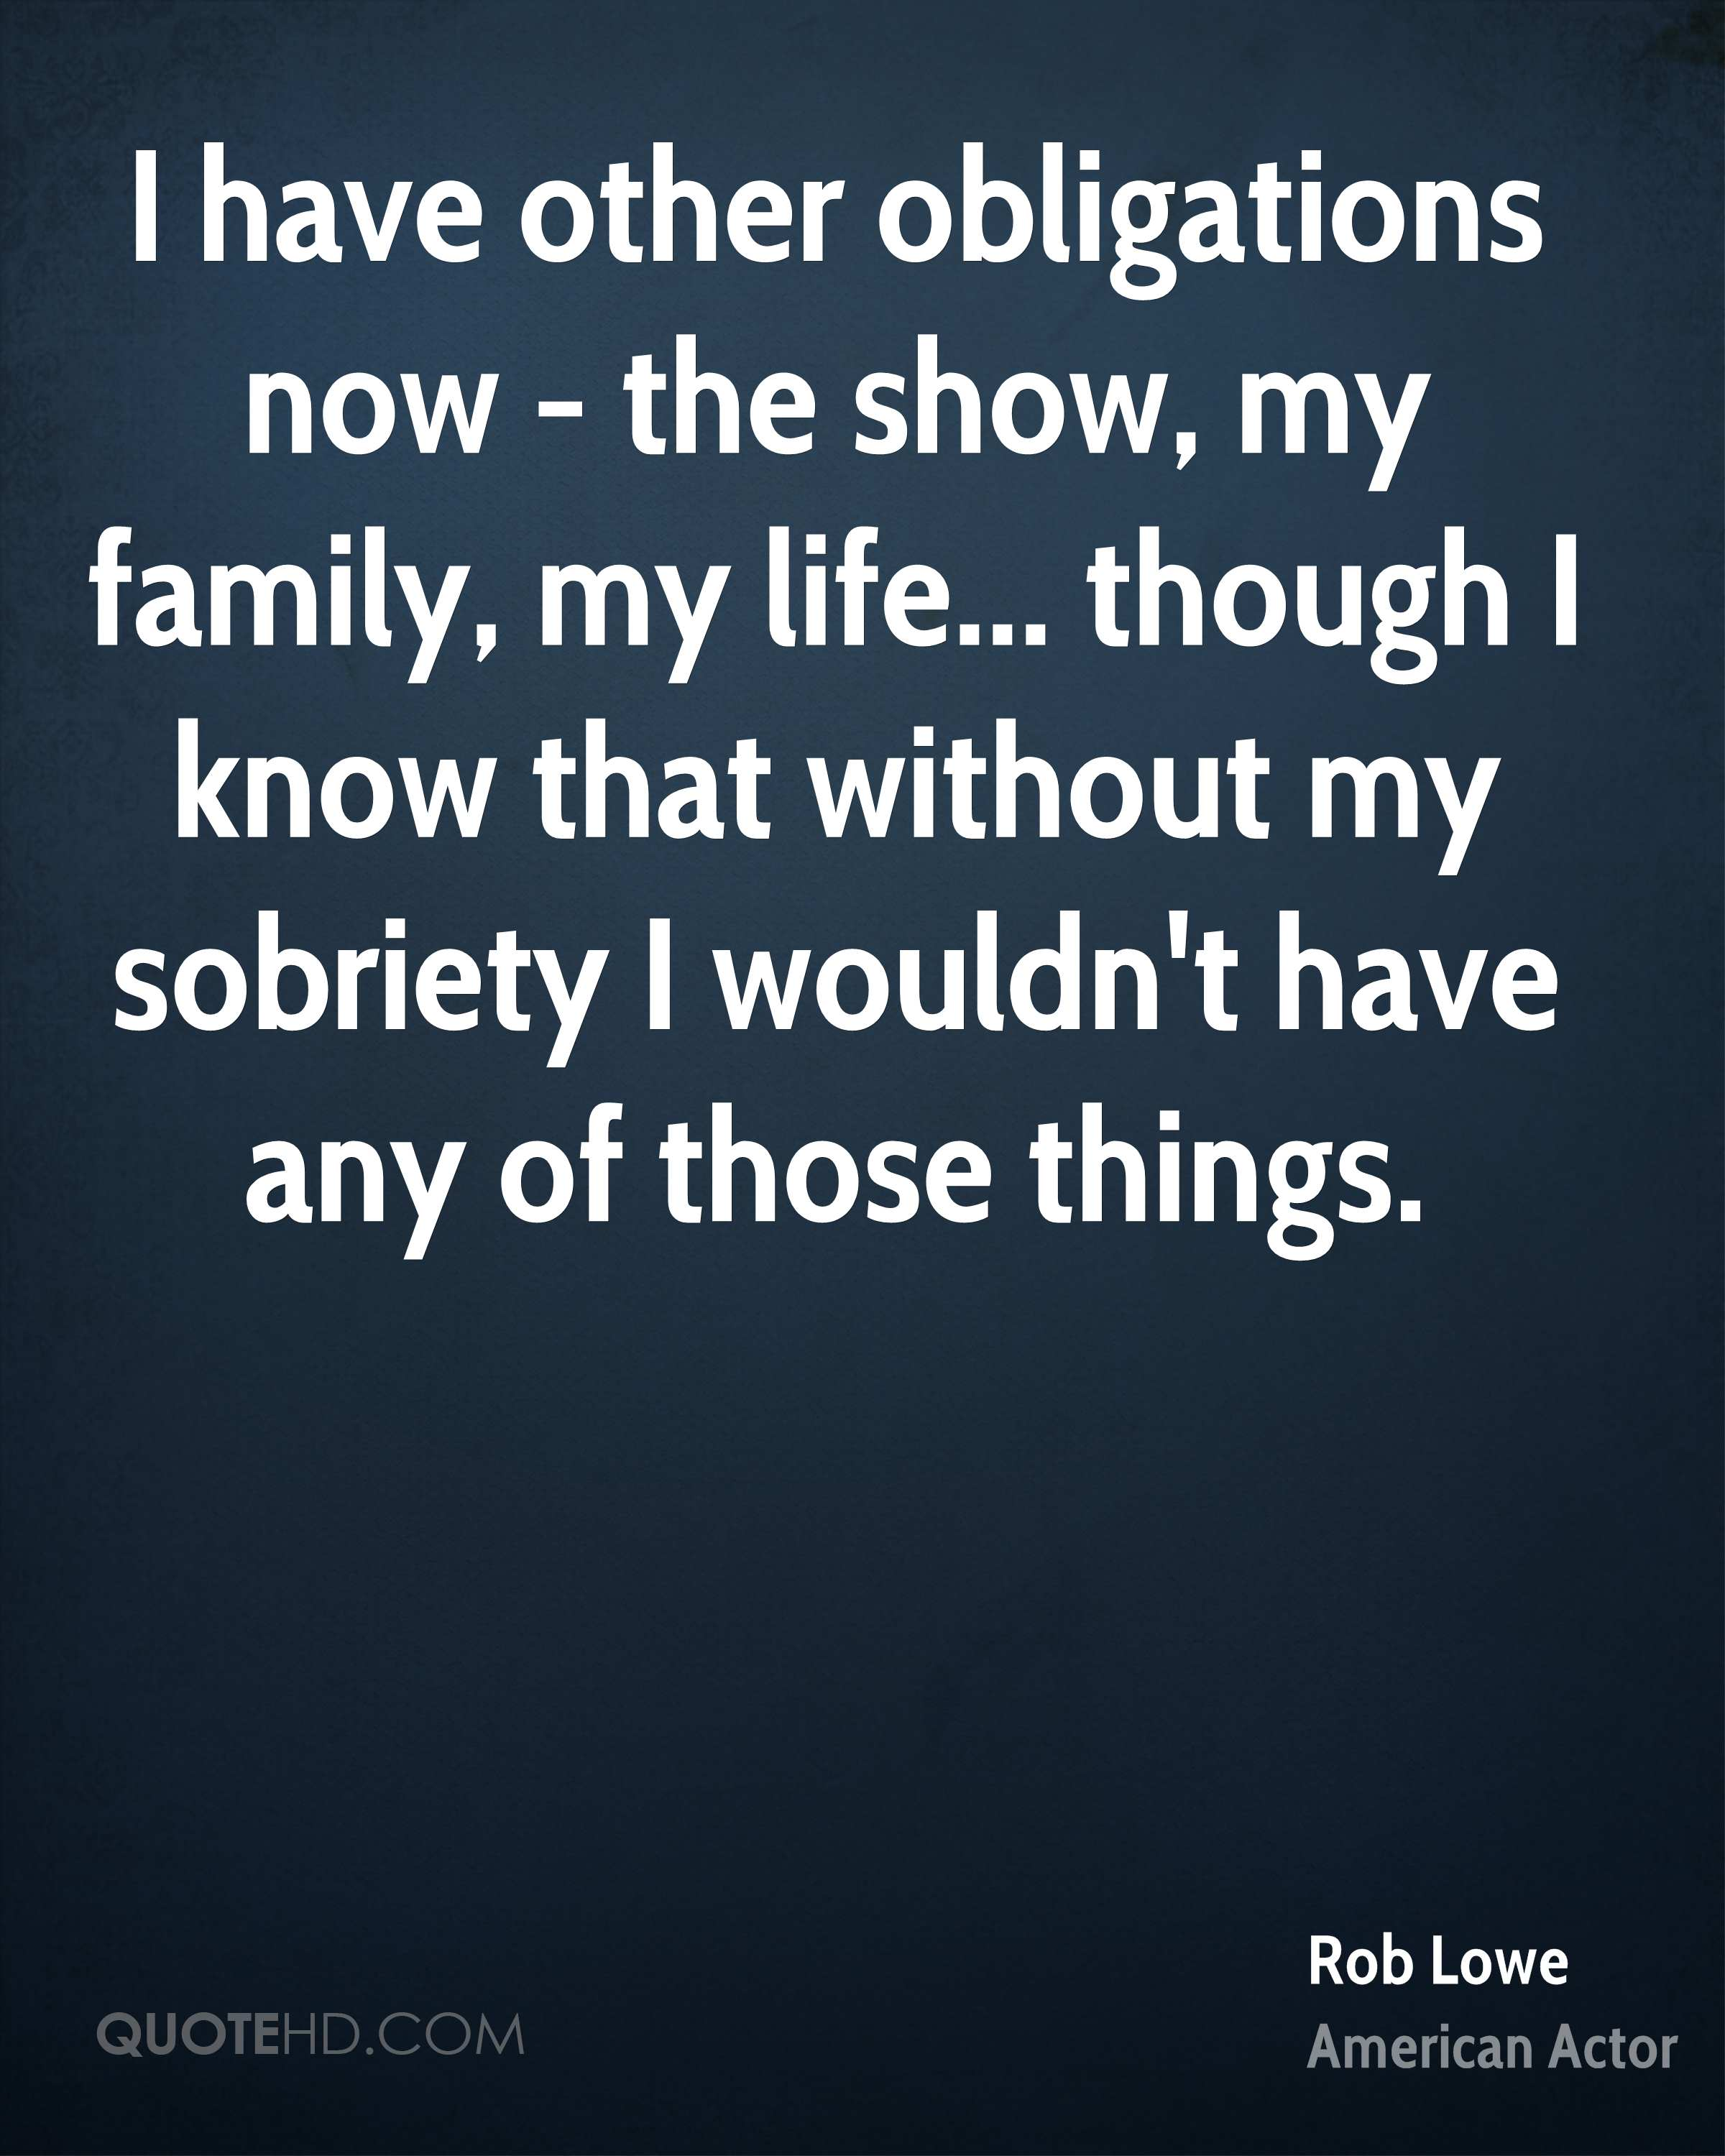 I have other obligations now - the show, my family, my life... though I know that without my sobriety I wouldn't have any of those things.